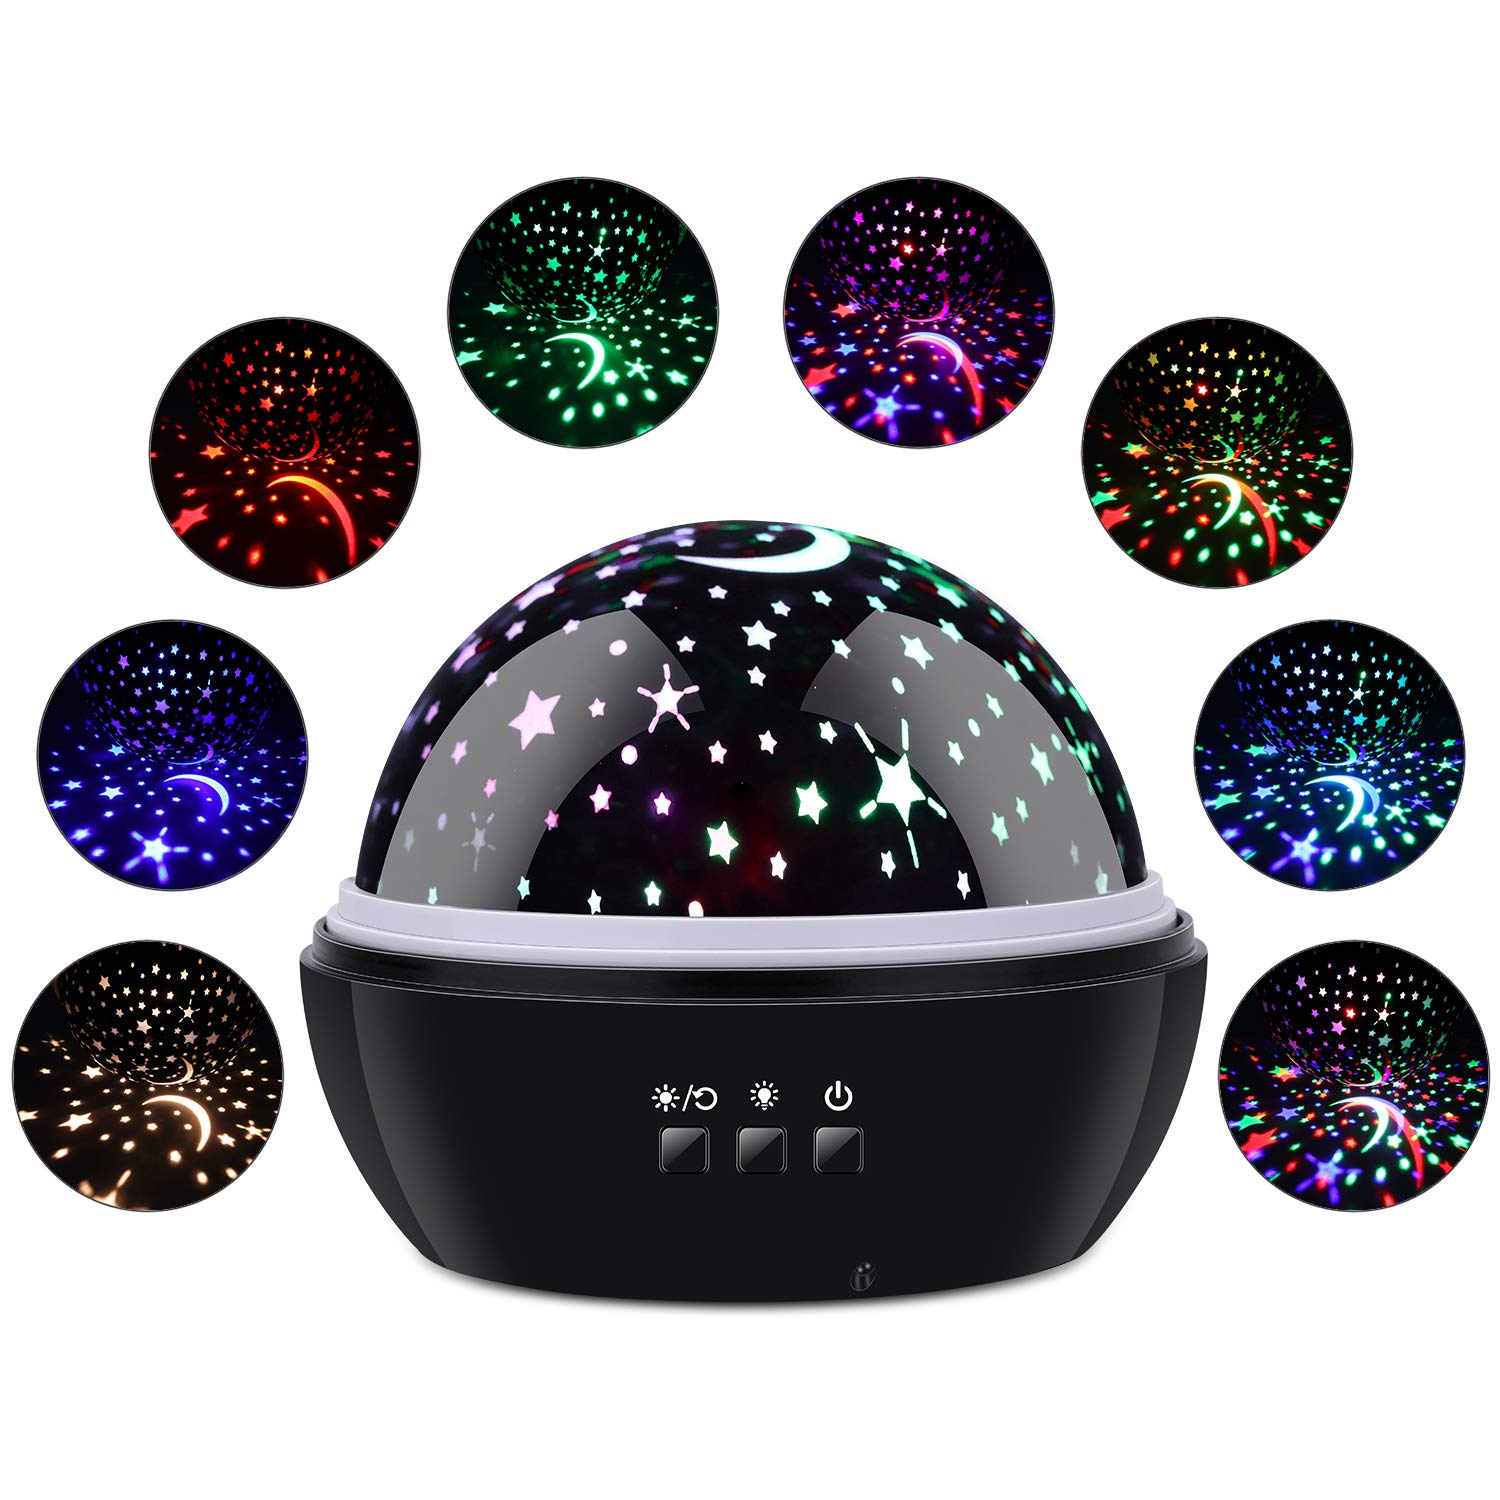 Star Night Light Projector, 2 in 1 Star/Undersea World 360° Kid Night Lamp, Gift for Boys and Girls (Black)